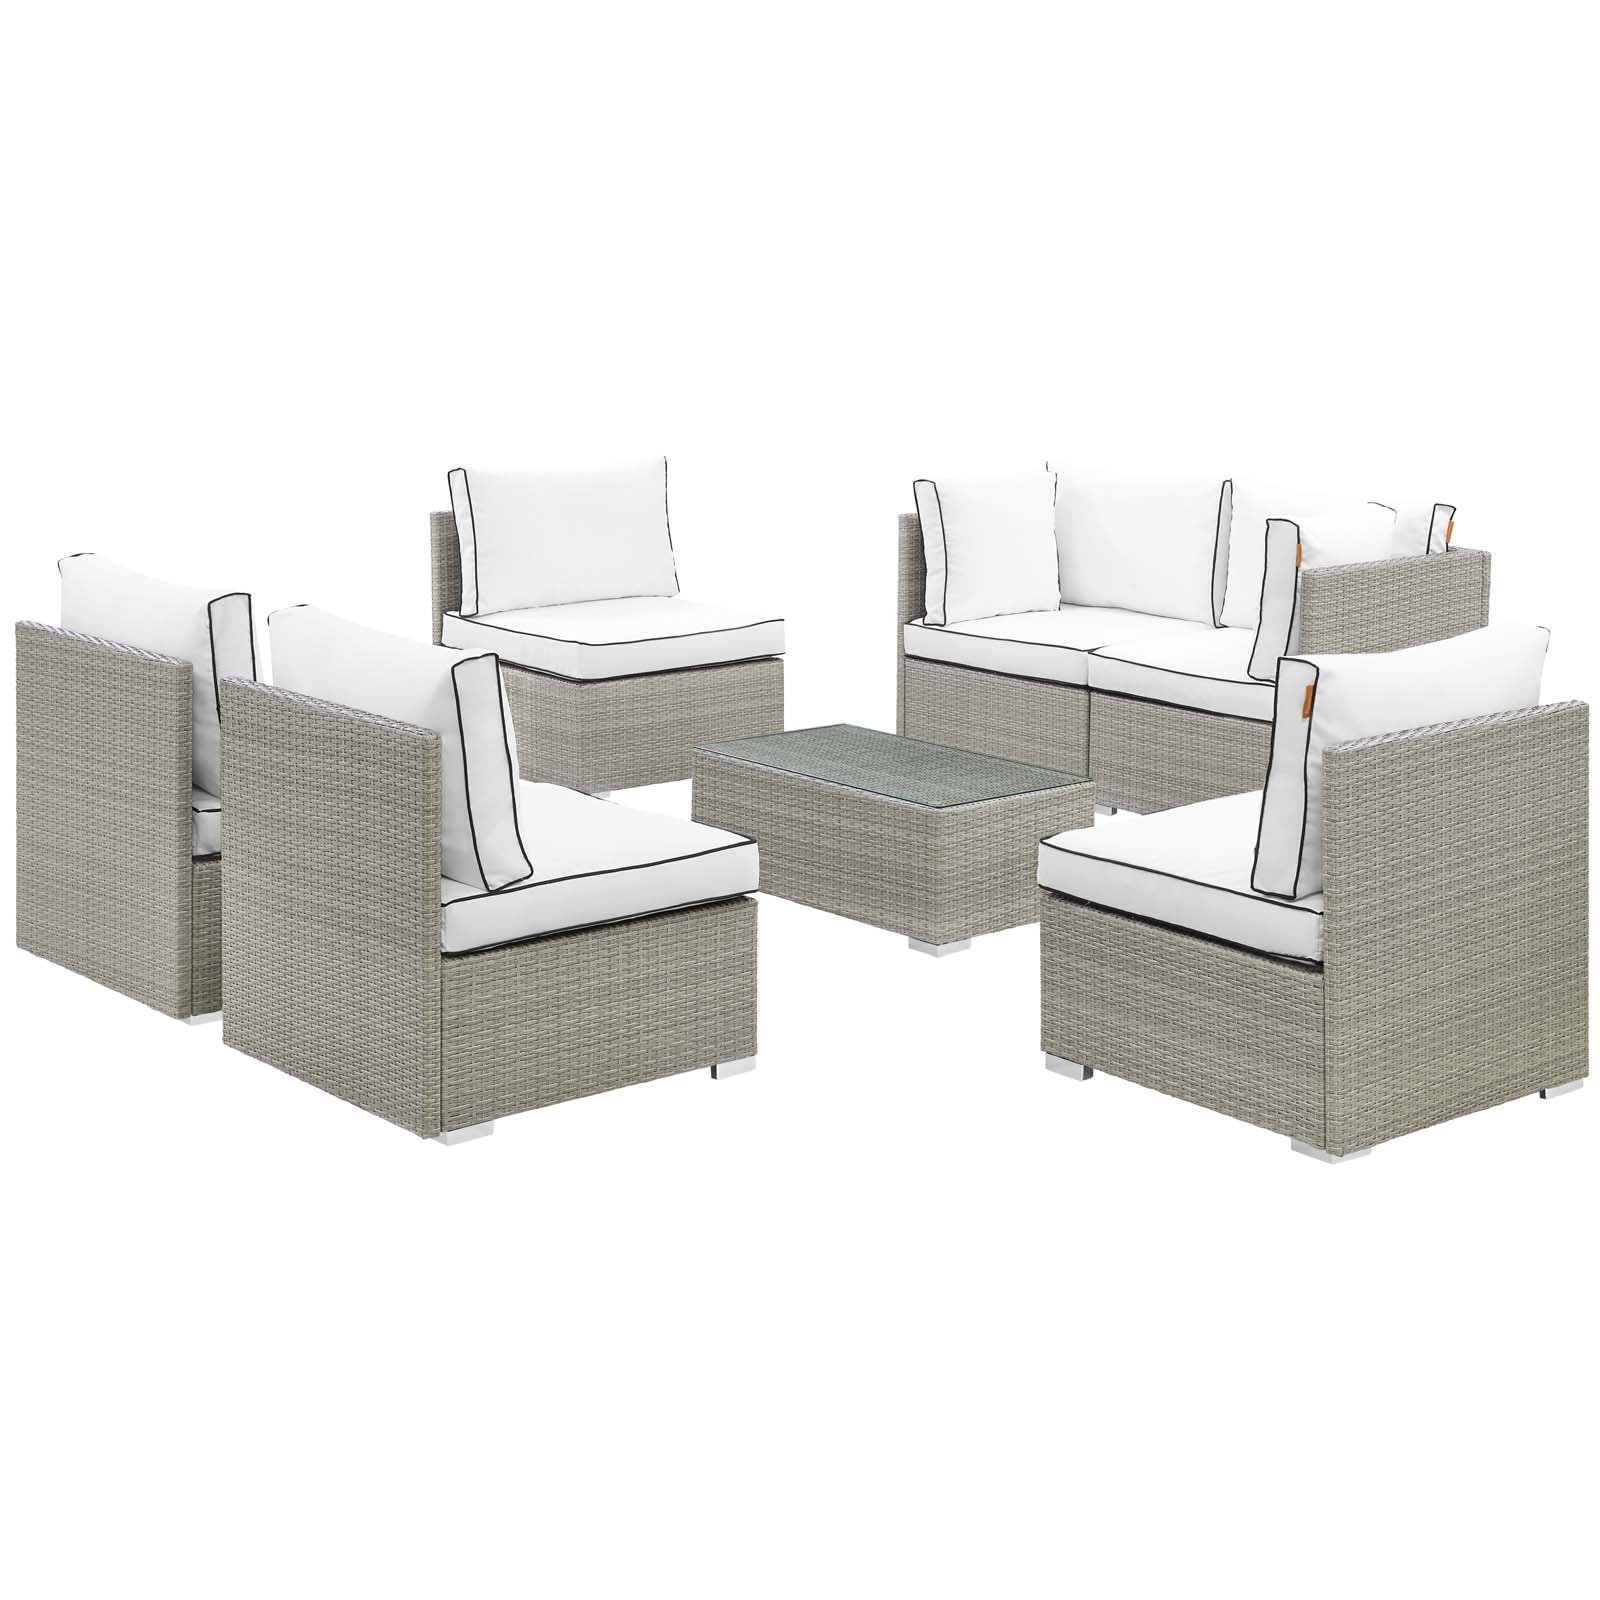 Repose 7 Piece Outdoor Patio Sectional Set Light Gray White EEI-3004-LGR-WHI-SE